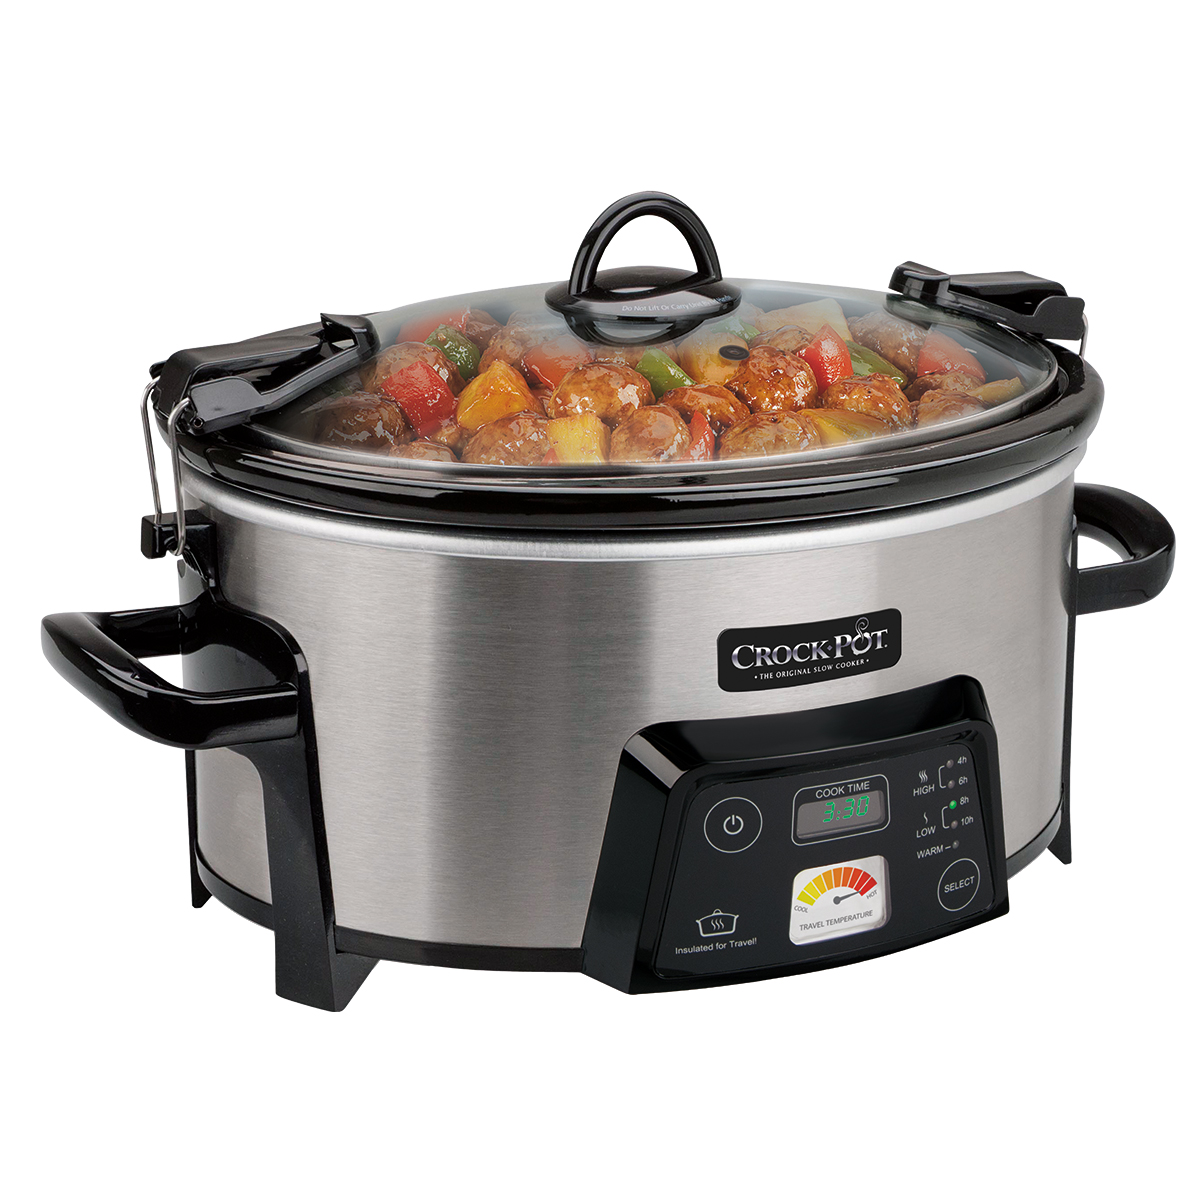 Crock-Pot 6-Quart Cook & Carry Digital Slow Cooker with Heat Saver StoNeware, Brushed Stainless Steel... by Crock-Pot